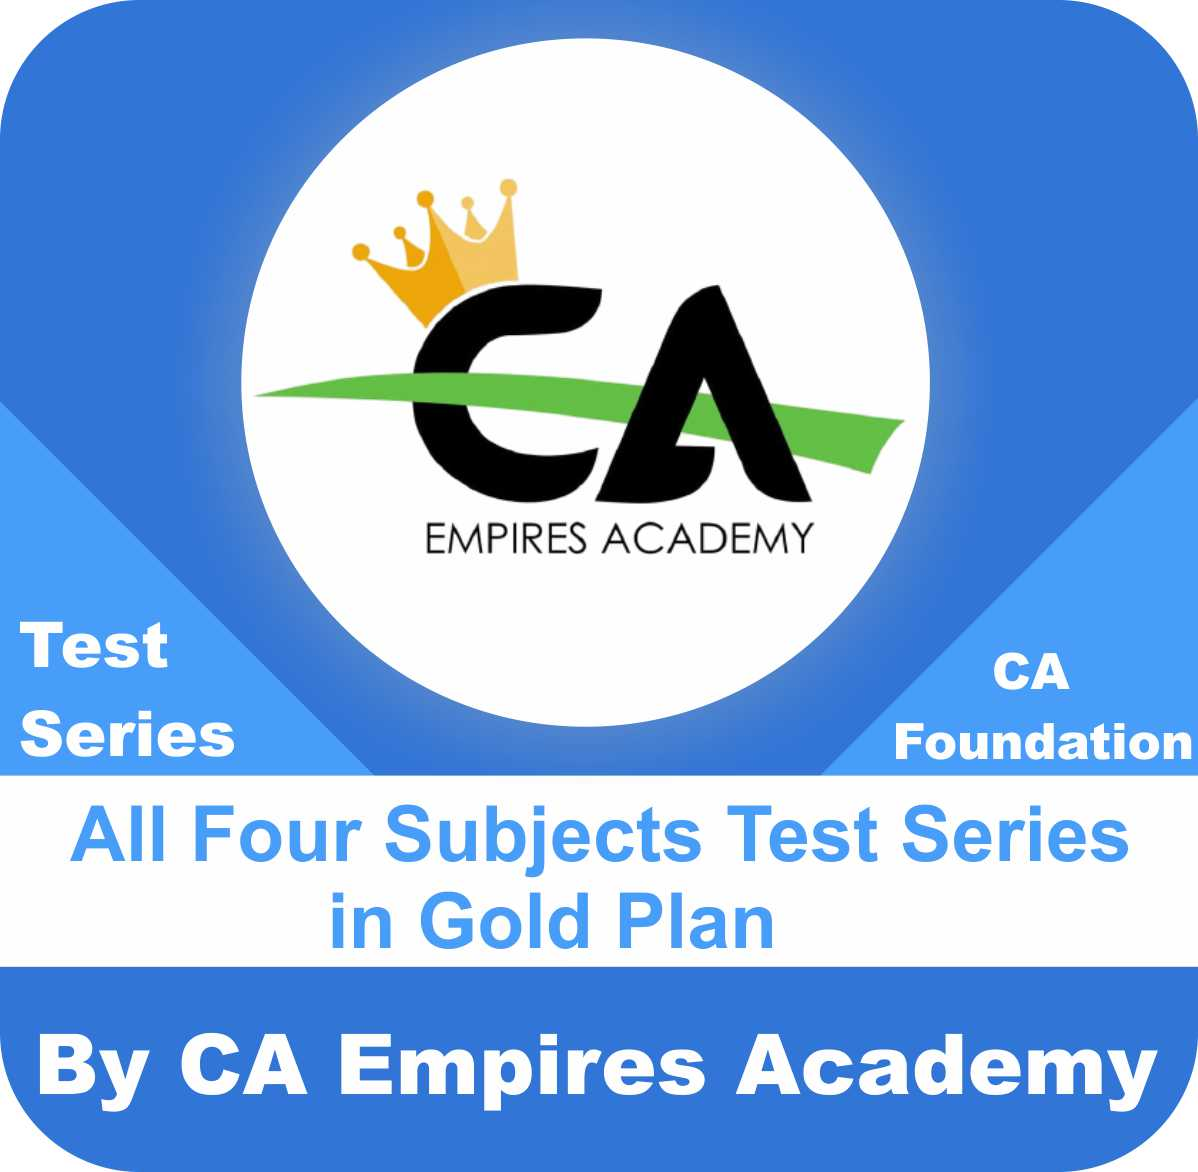 CA Foundation All Four Subjects Test Series in Gold Plan by CA Empires Academy